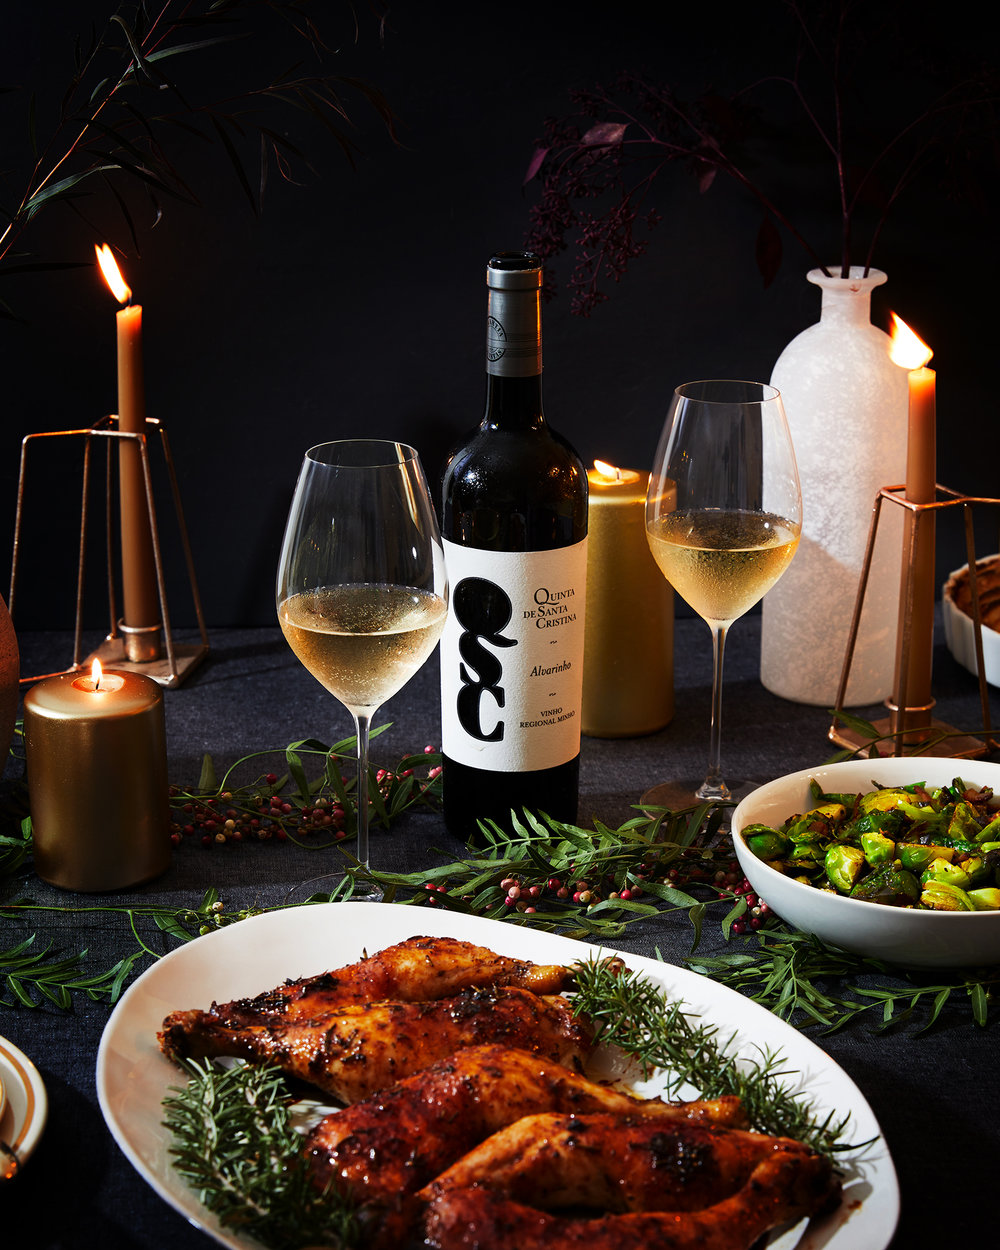 Family Style Holiday Meny + Vinho Verde Wine Pairing